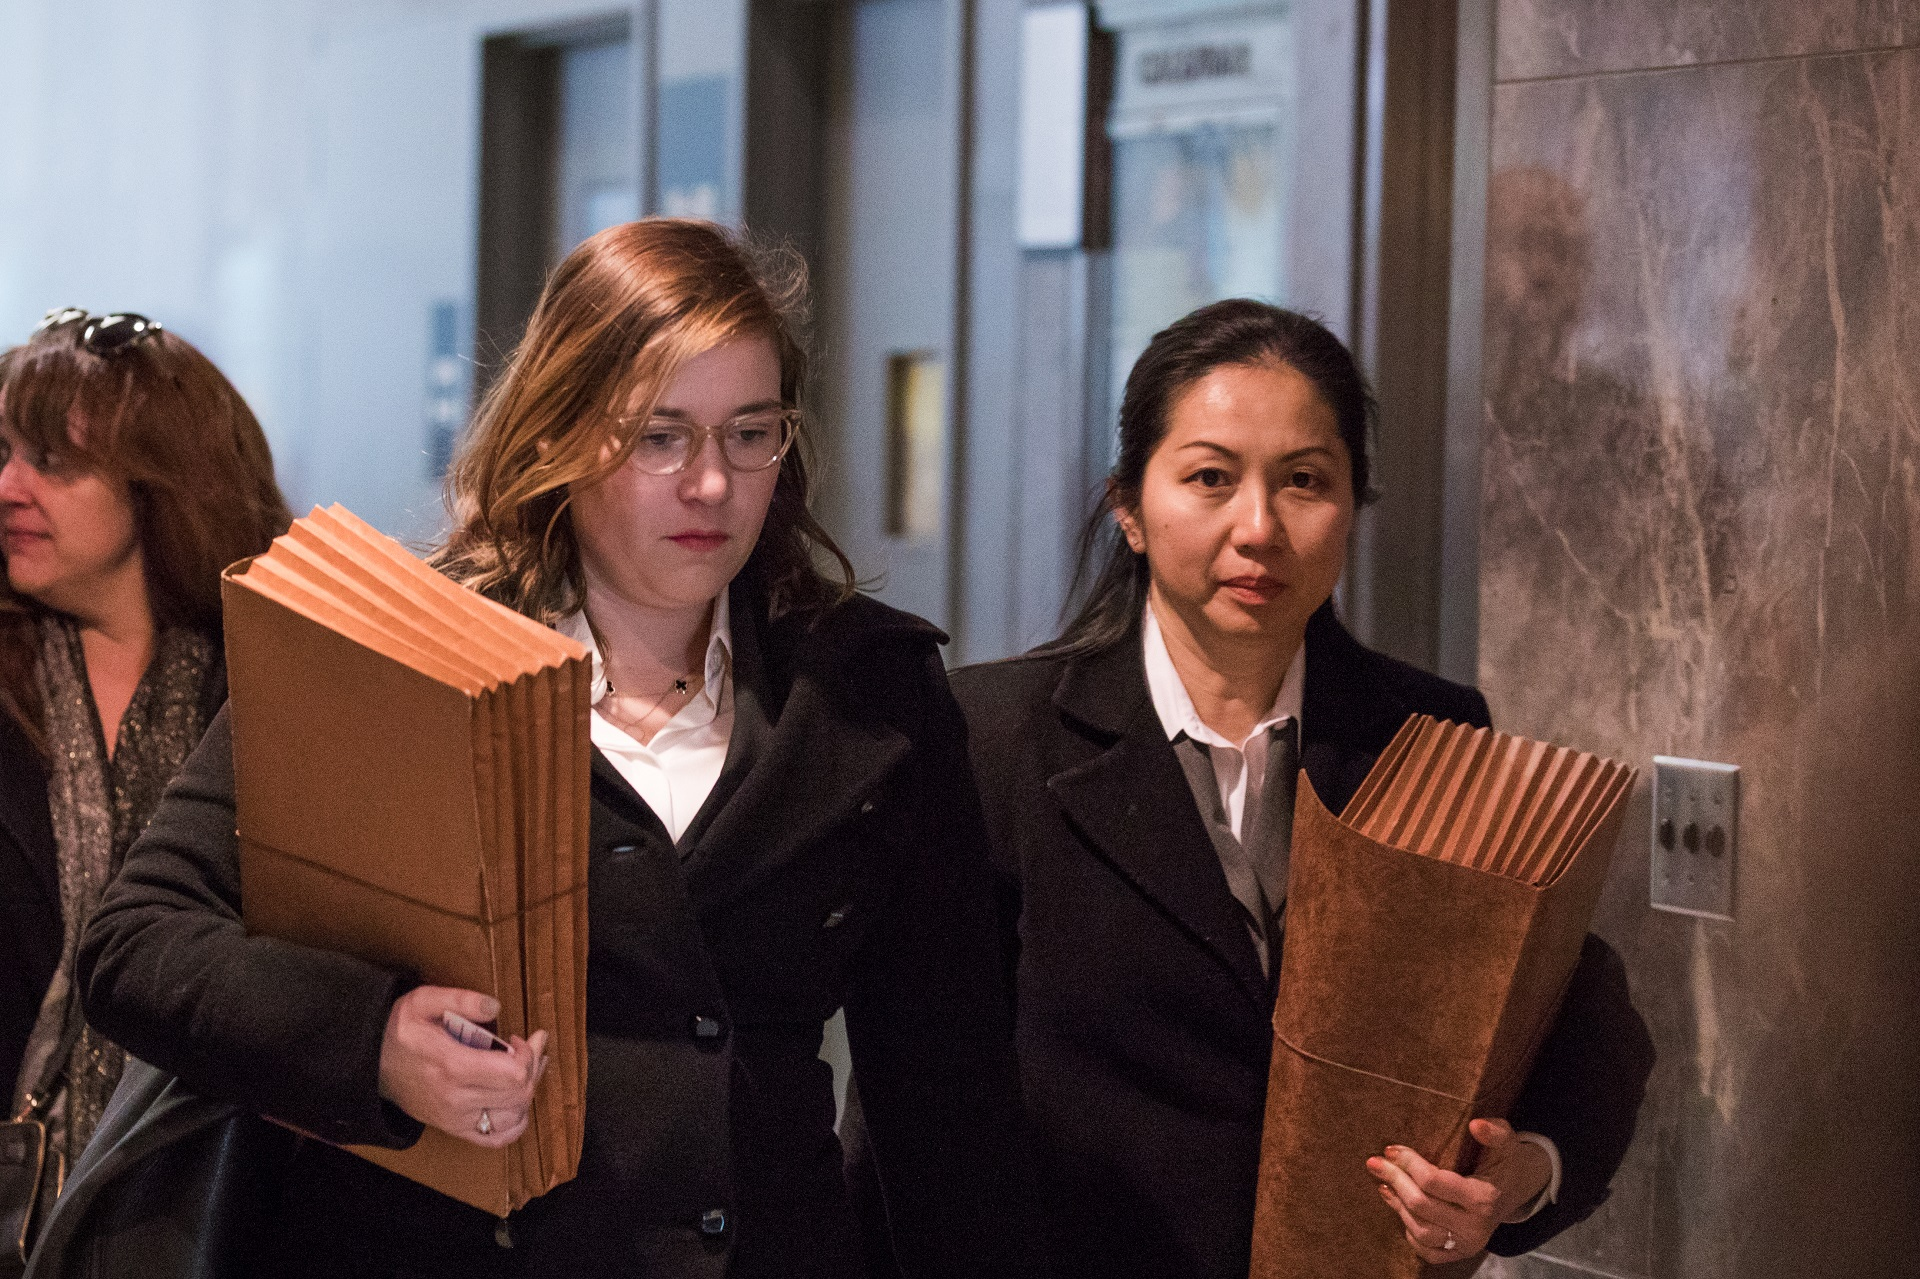 Legal Aid attorneys Julia Burke (left) and Jenny Cheung (right) filed a motion to set aside a guilty verdict in the case of the man convicted of killing Karina Vetrano. Judge Michael Aloise denied the motion after a hearing Monday.  Eagle  file photo by Paul Frangipane.